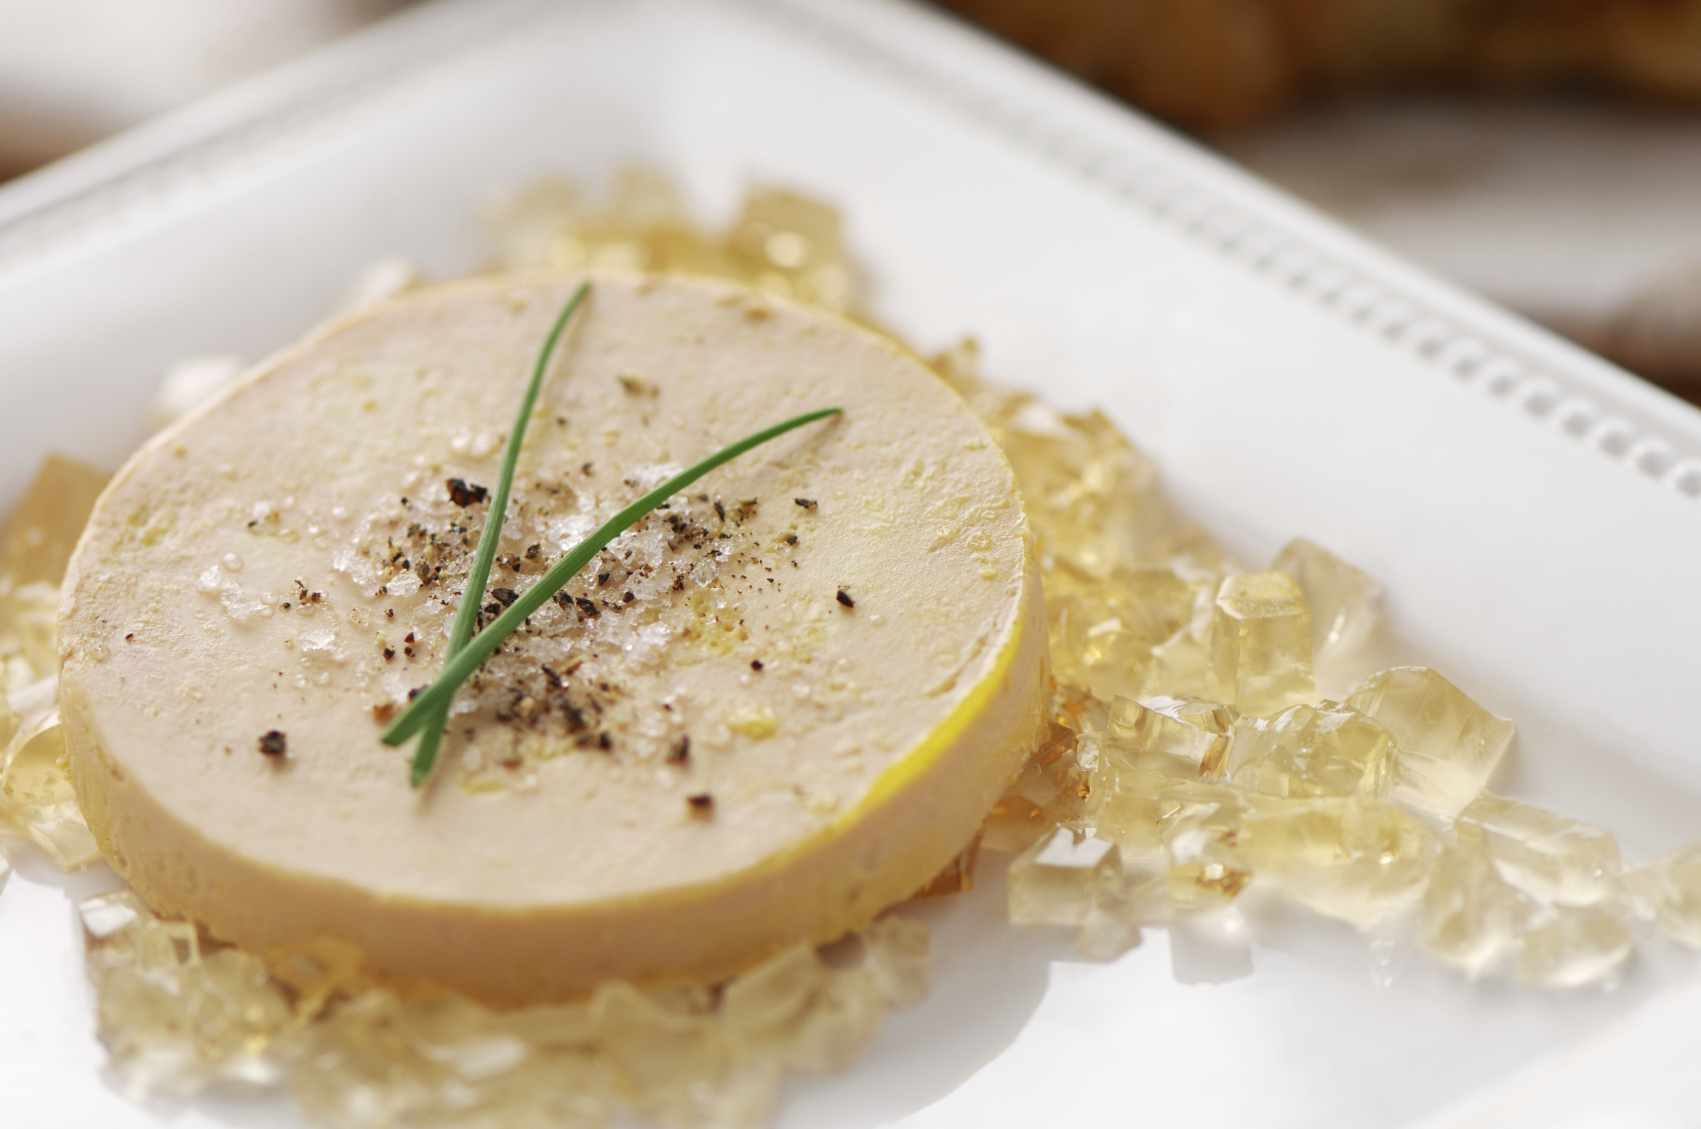 Foie Gras: The Indelicate Delicacy